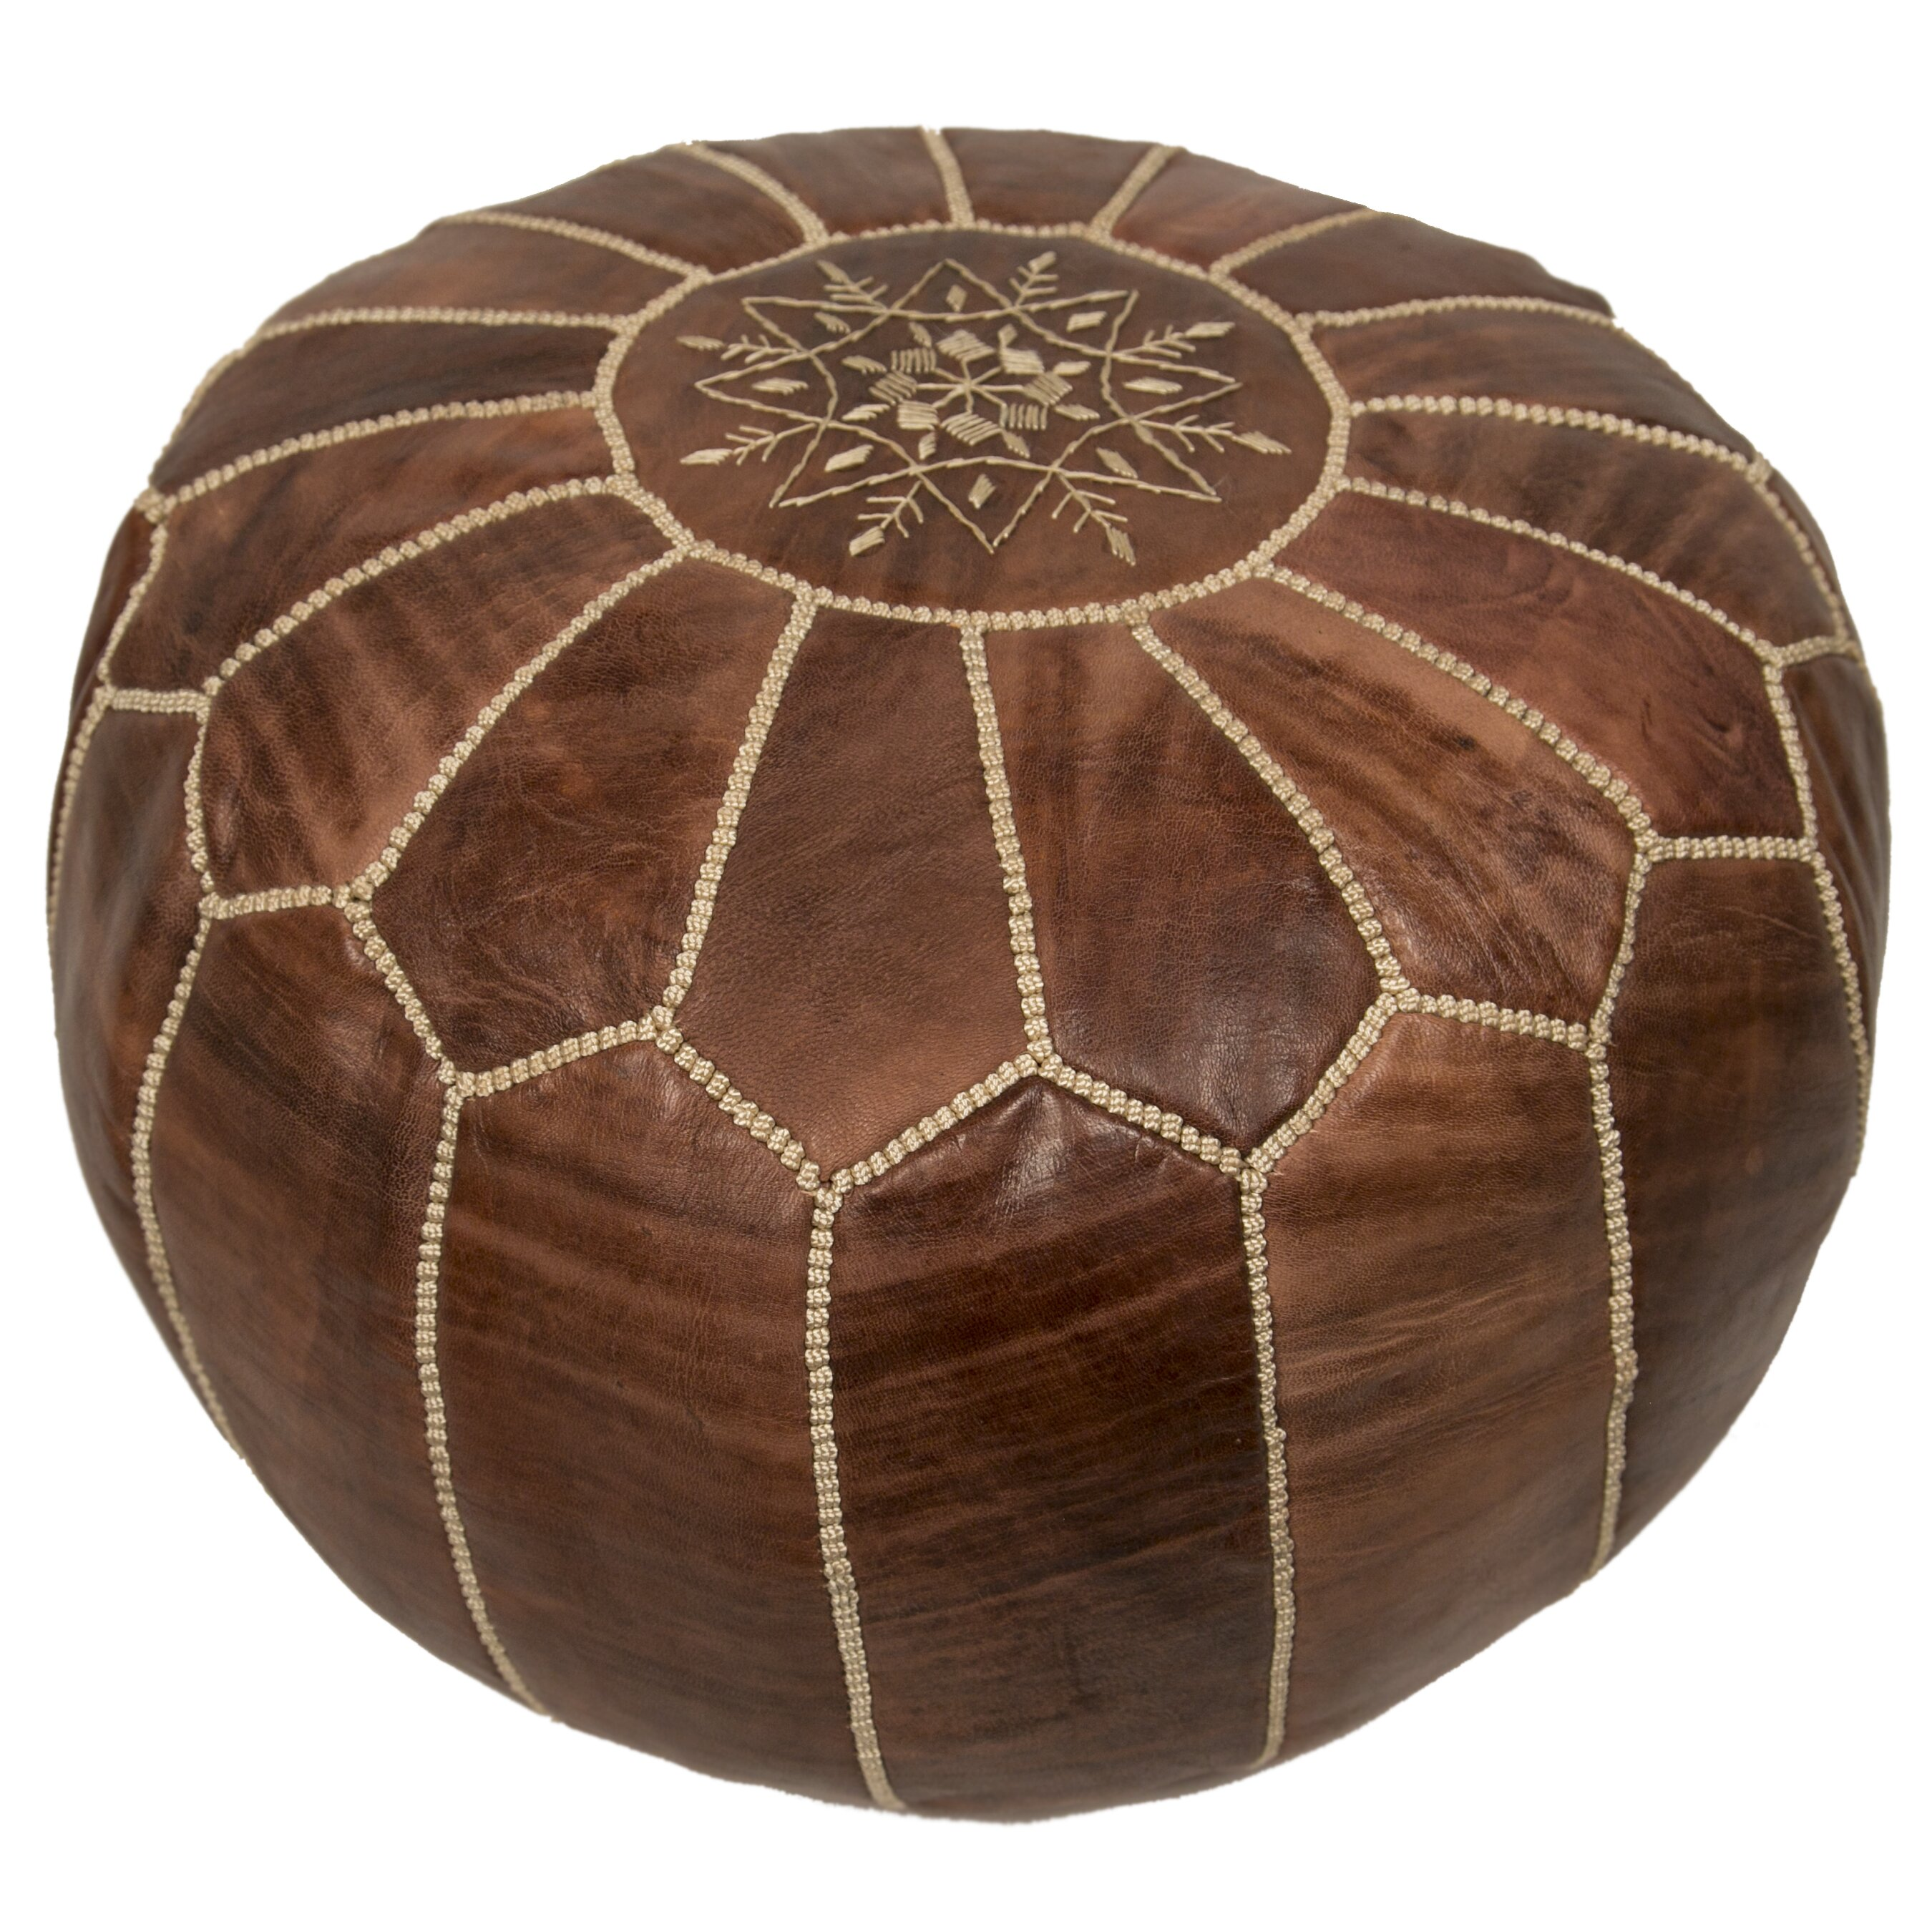 bungalow rose embroidered pouf leather ottoman reviews. Black Bedroom Furniture Sets. Home Design Ideas